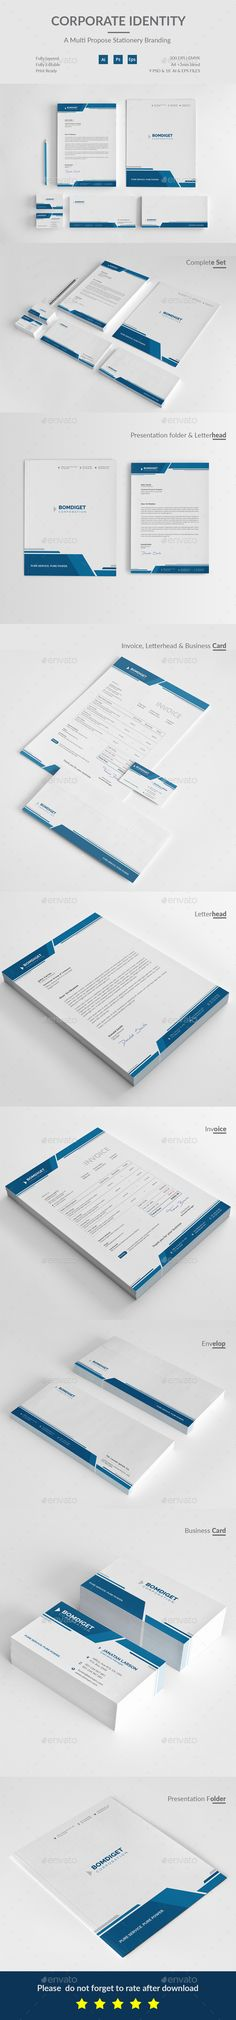 328 best Stationery and Identity Templates images on Pinterest - stationery for businesses